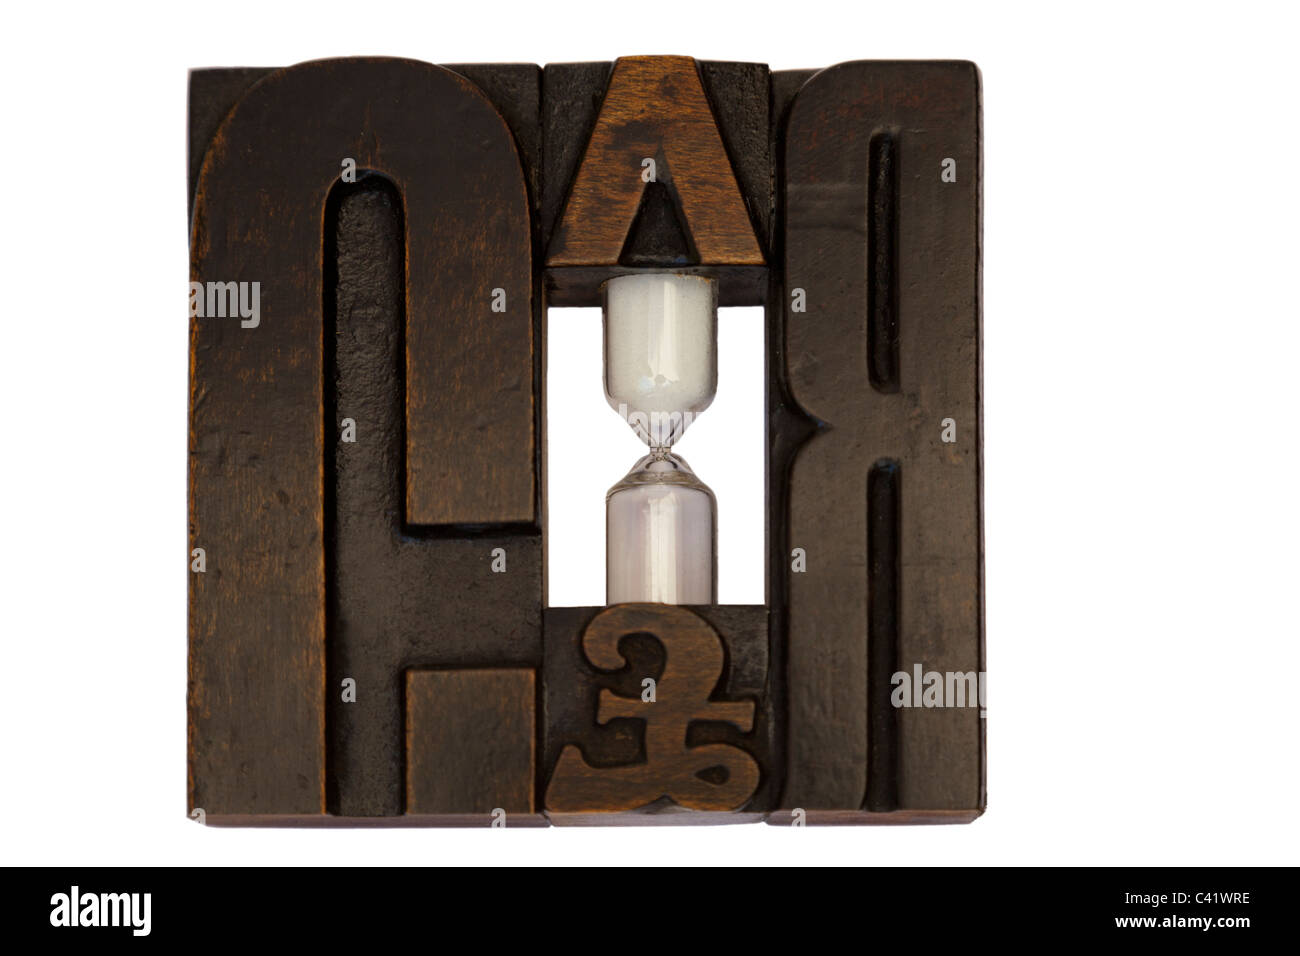 Old wooden prints recycled into an hourglass stand (England) Vieux caractères d'imprimerie recyclés - Stock Image